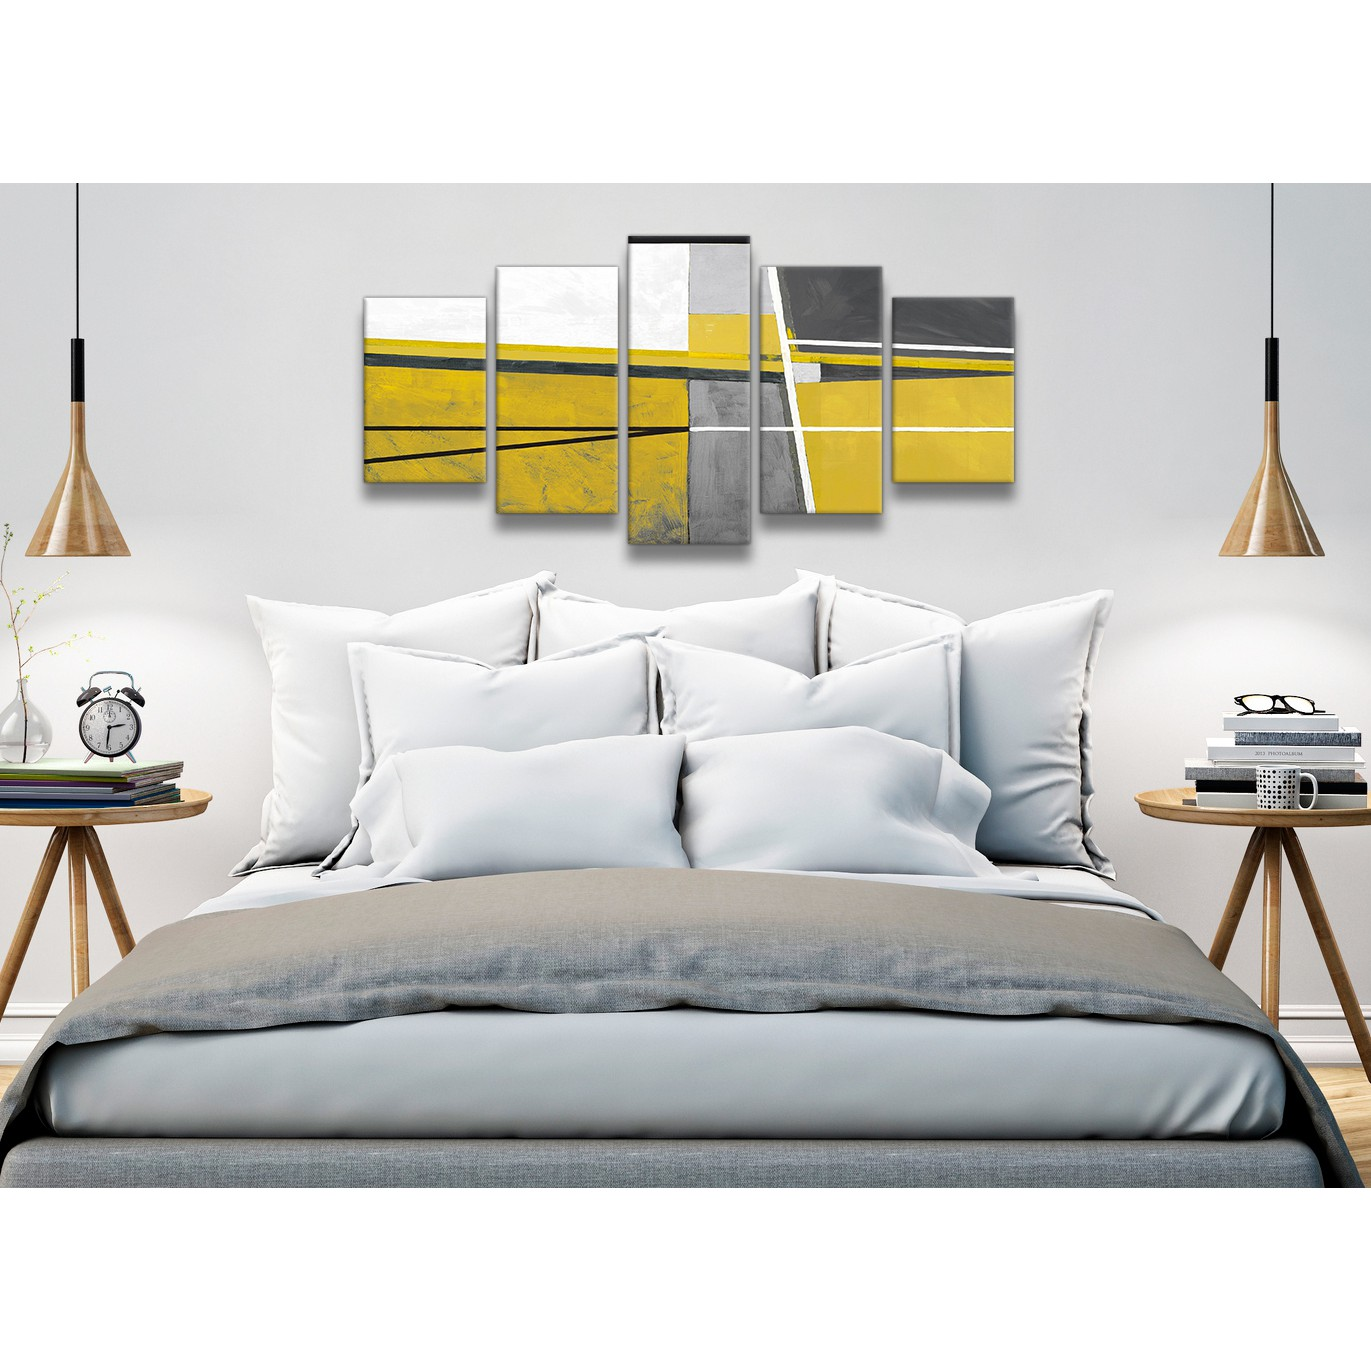 Pink Bedroom Decor 5 Panel Mustard Yellow Grey Painting Abstract Bedroom